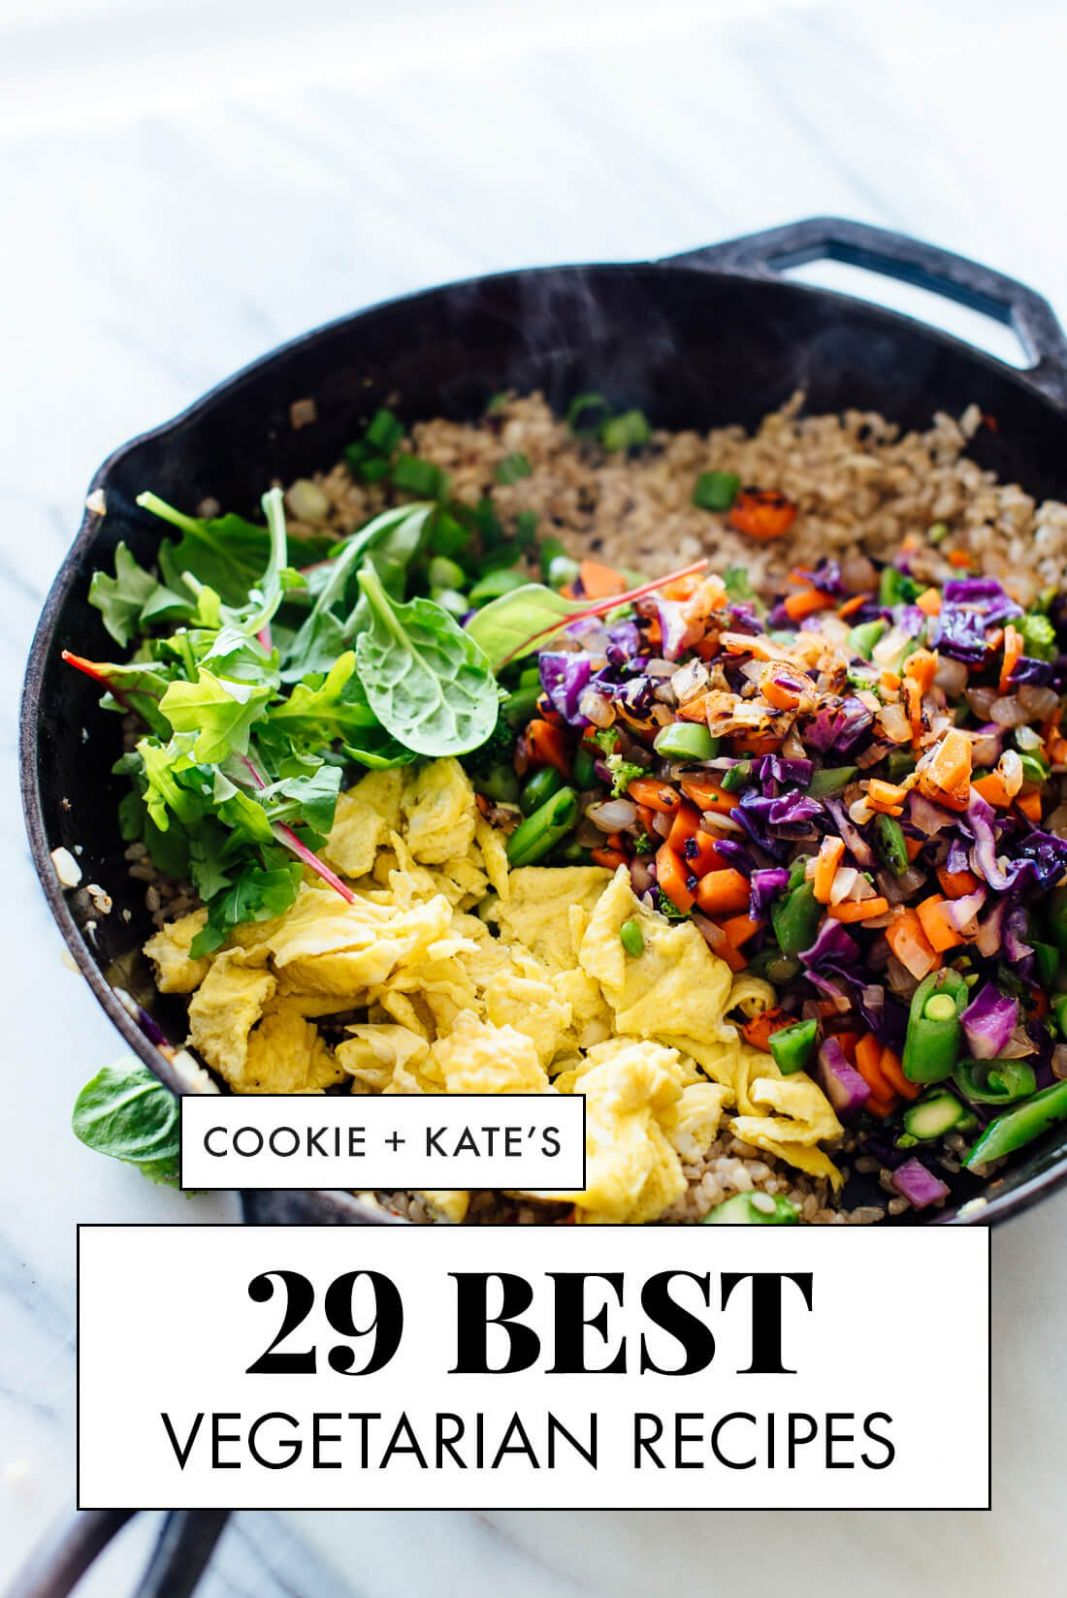 12 Best Vegetarian Recipes - Cookie and Kate - Vegetarian Recipes You Must Try